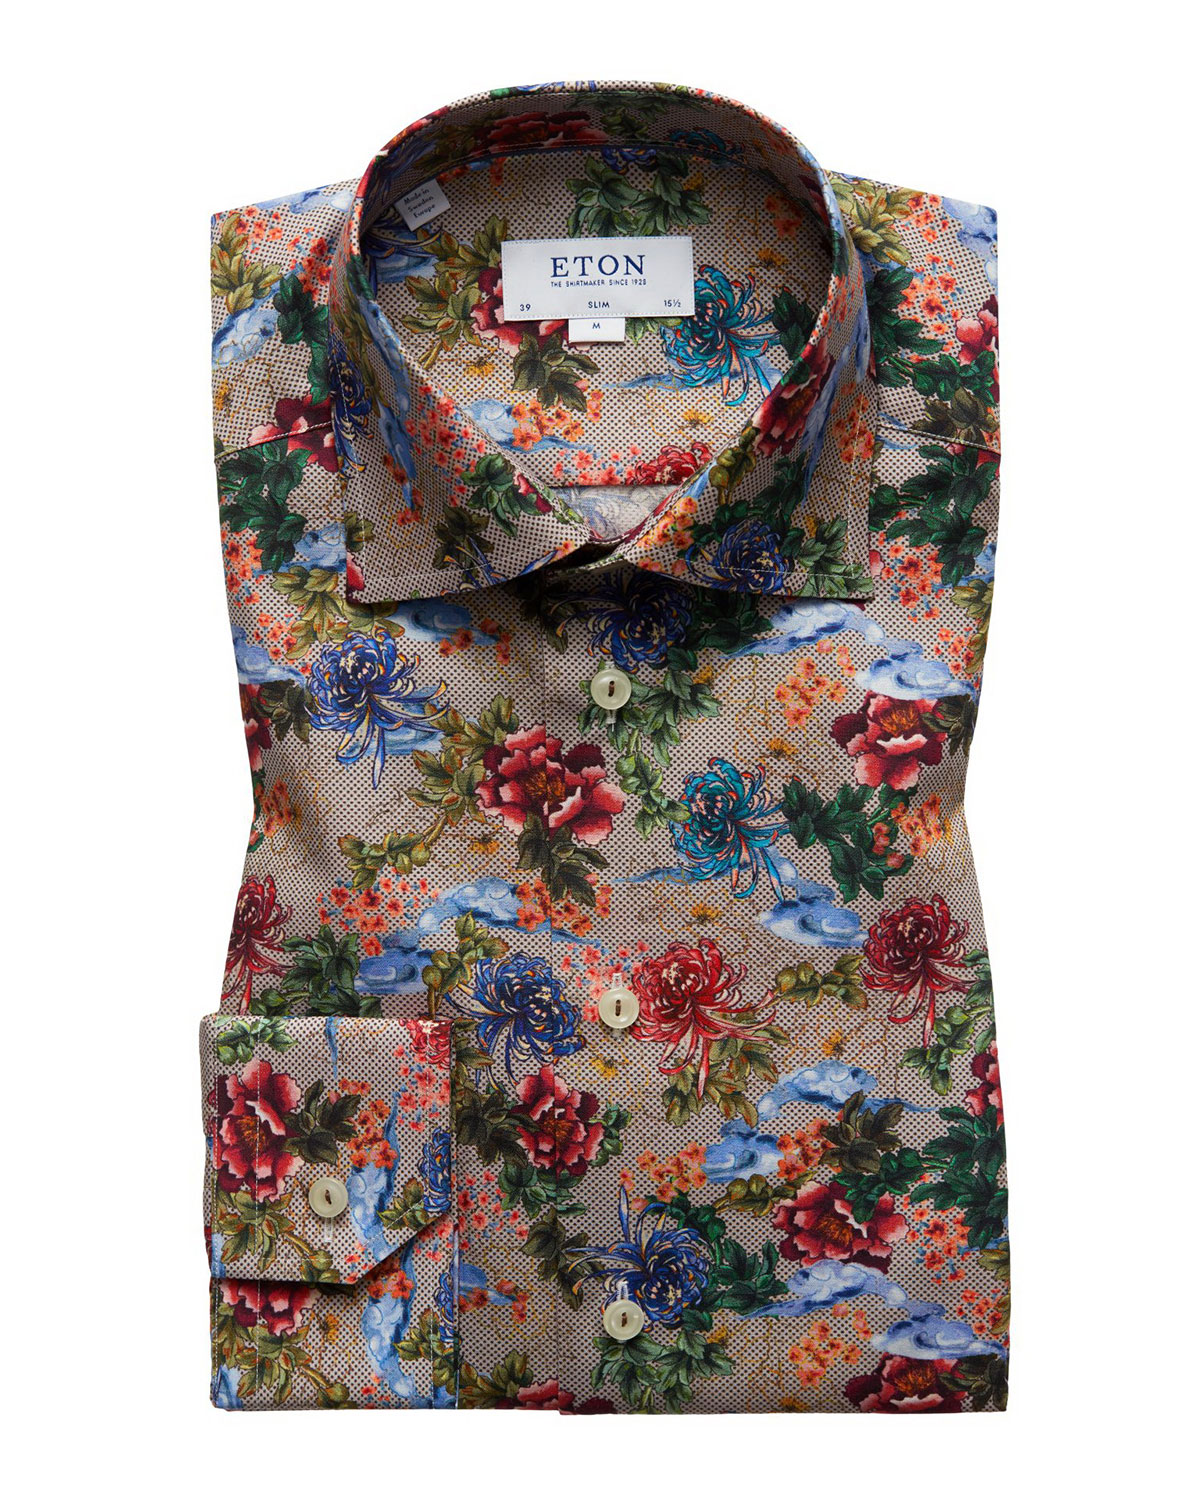 Wedding Gift Stores Nyc: Eton Men's Slim-Fit Floral-Print Dress Shirt